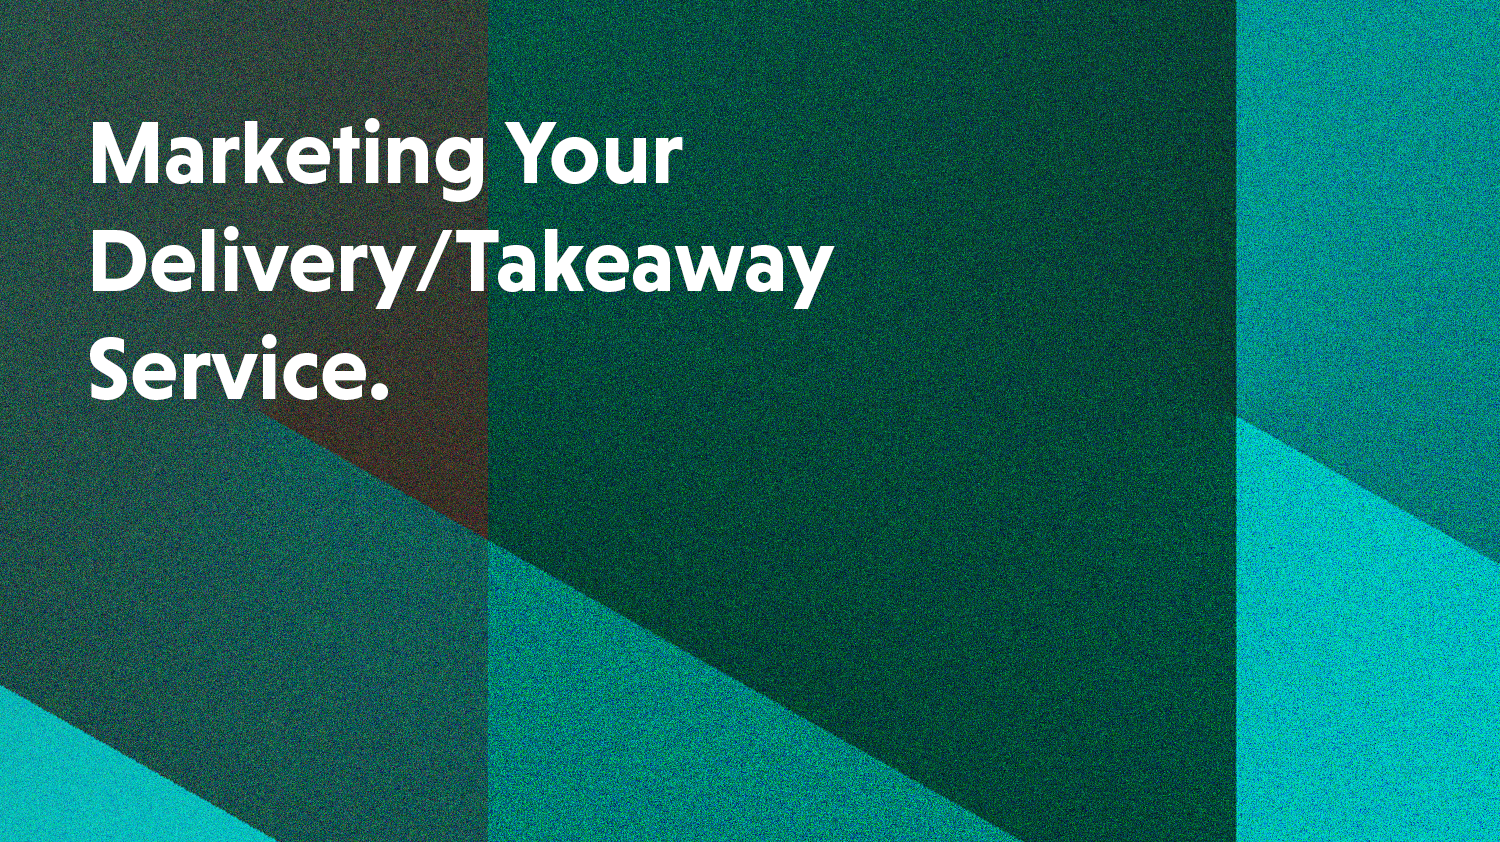 Marketing Your Takeaway/Delivery Service